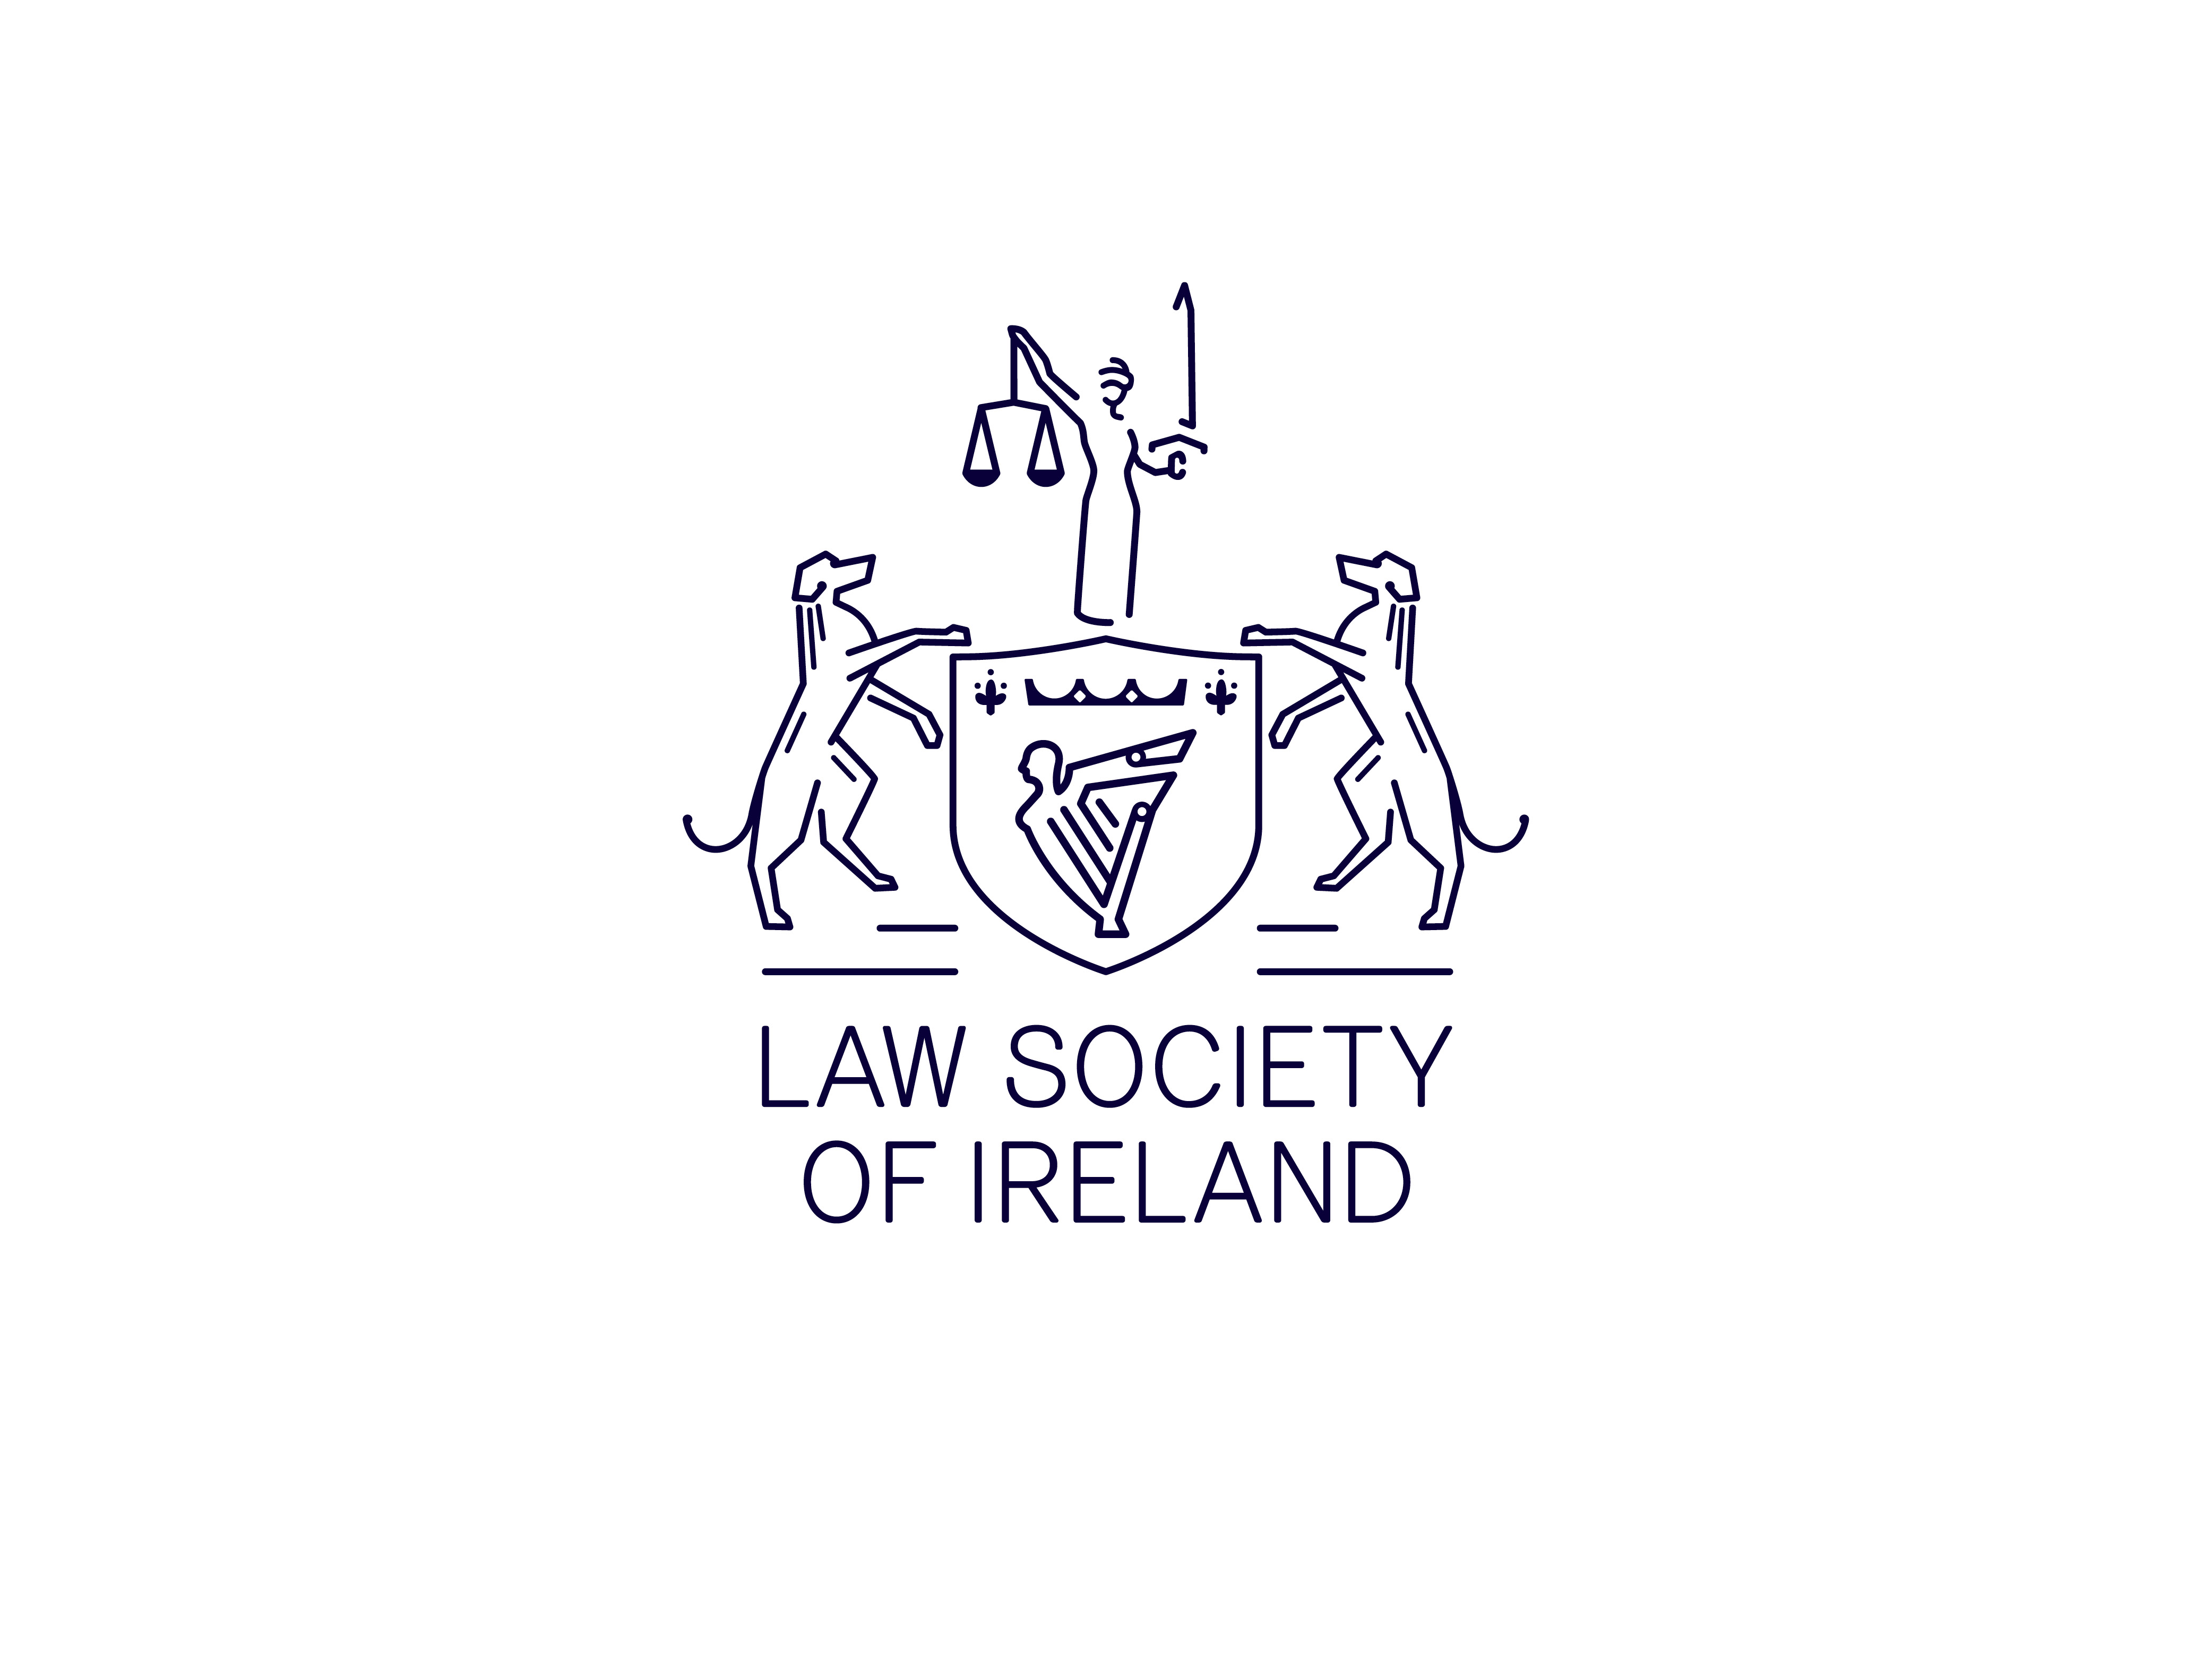 Cover image: The Law Society of Ireland Rebrand (2014)